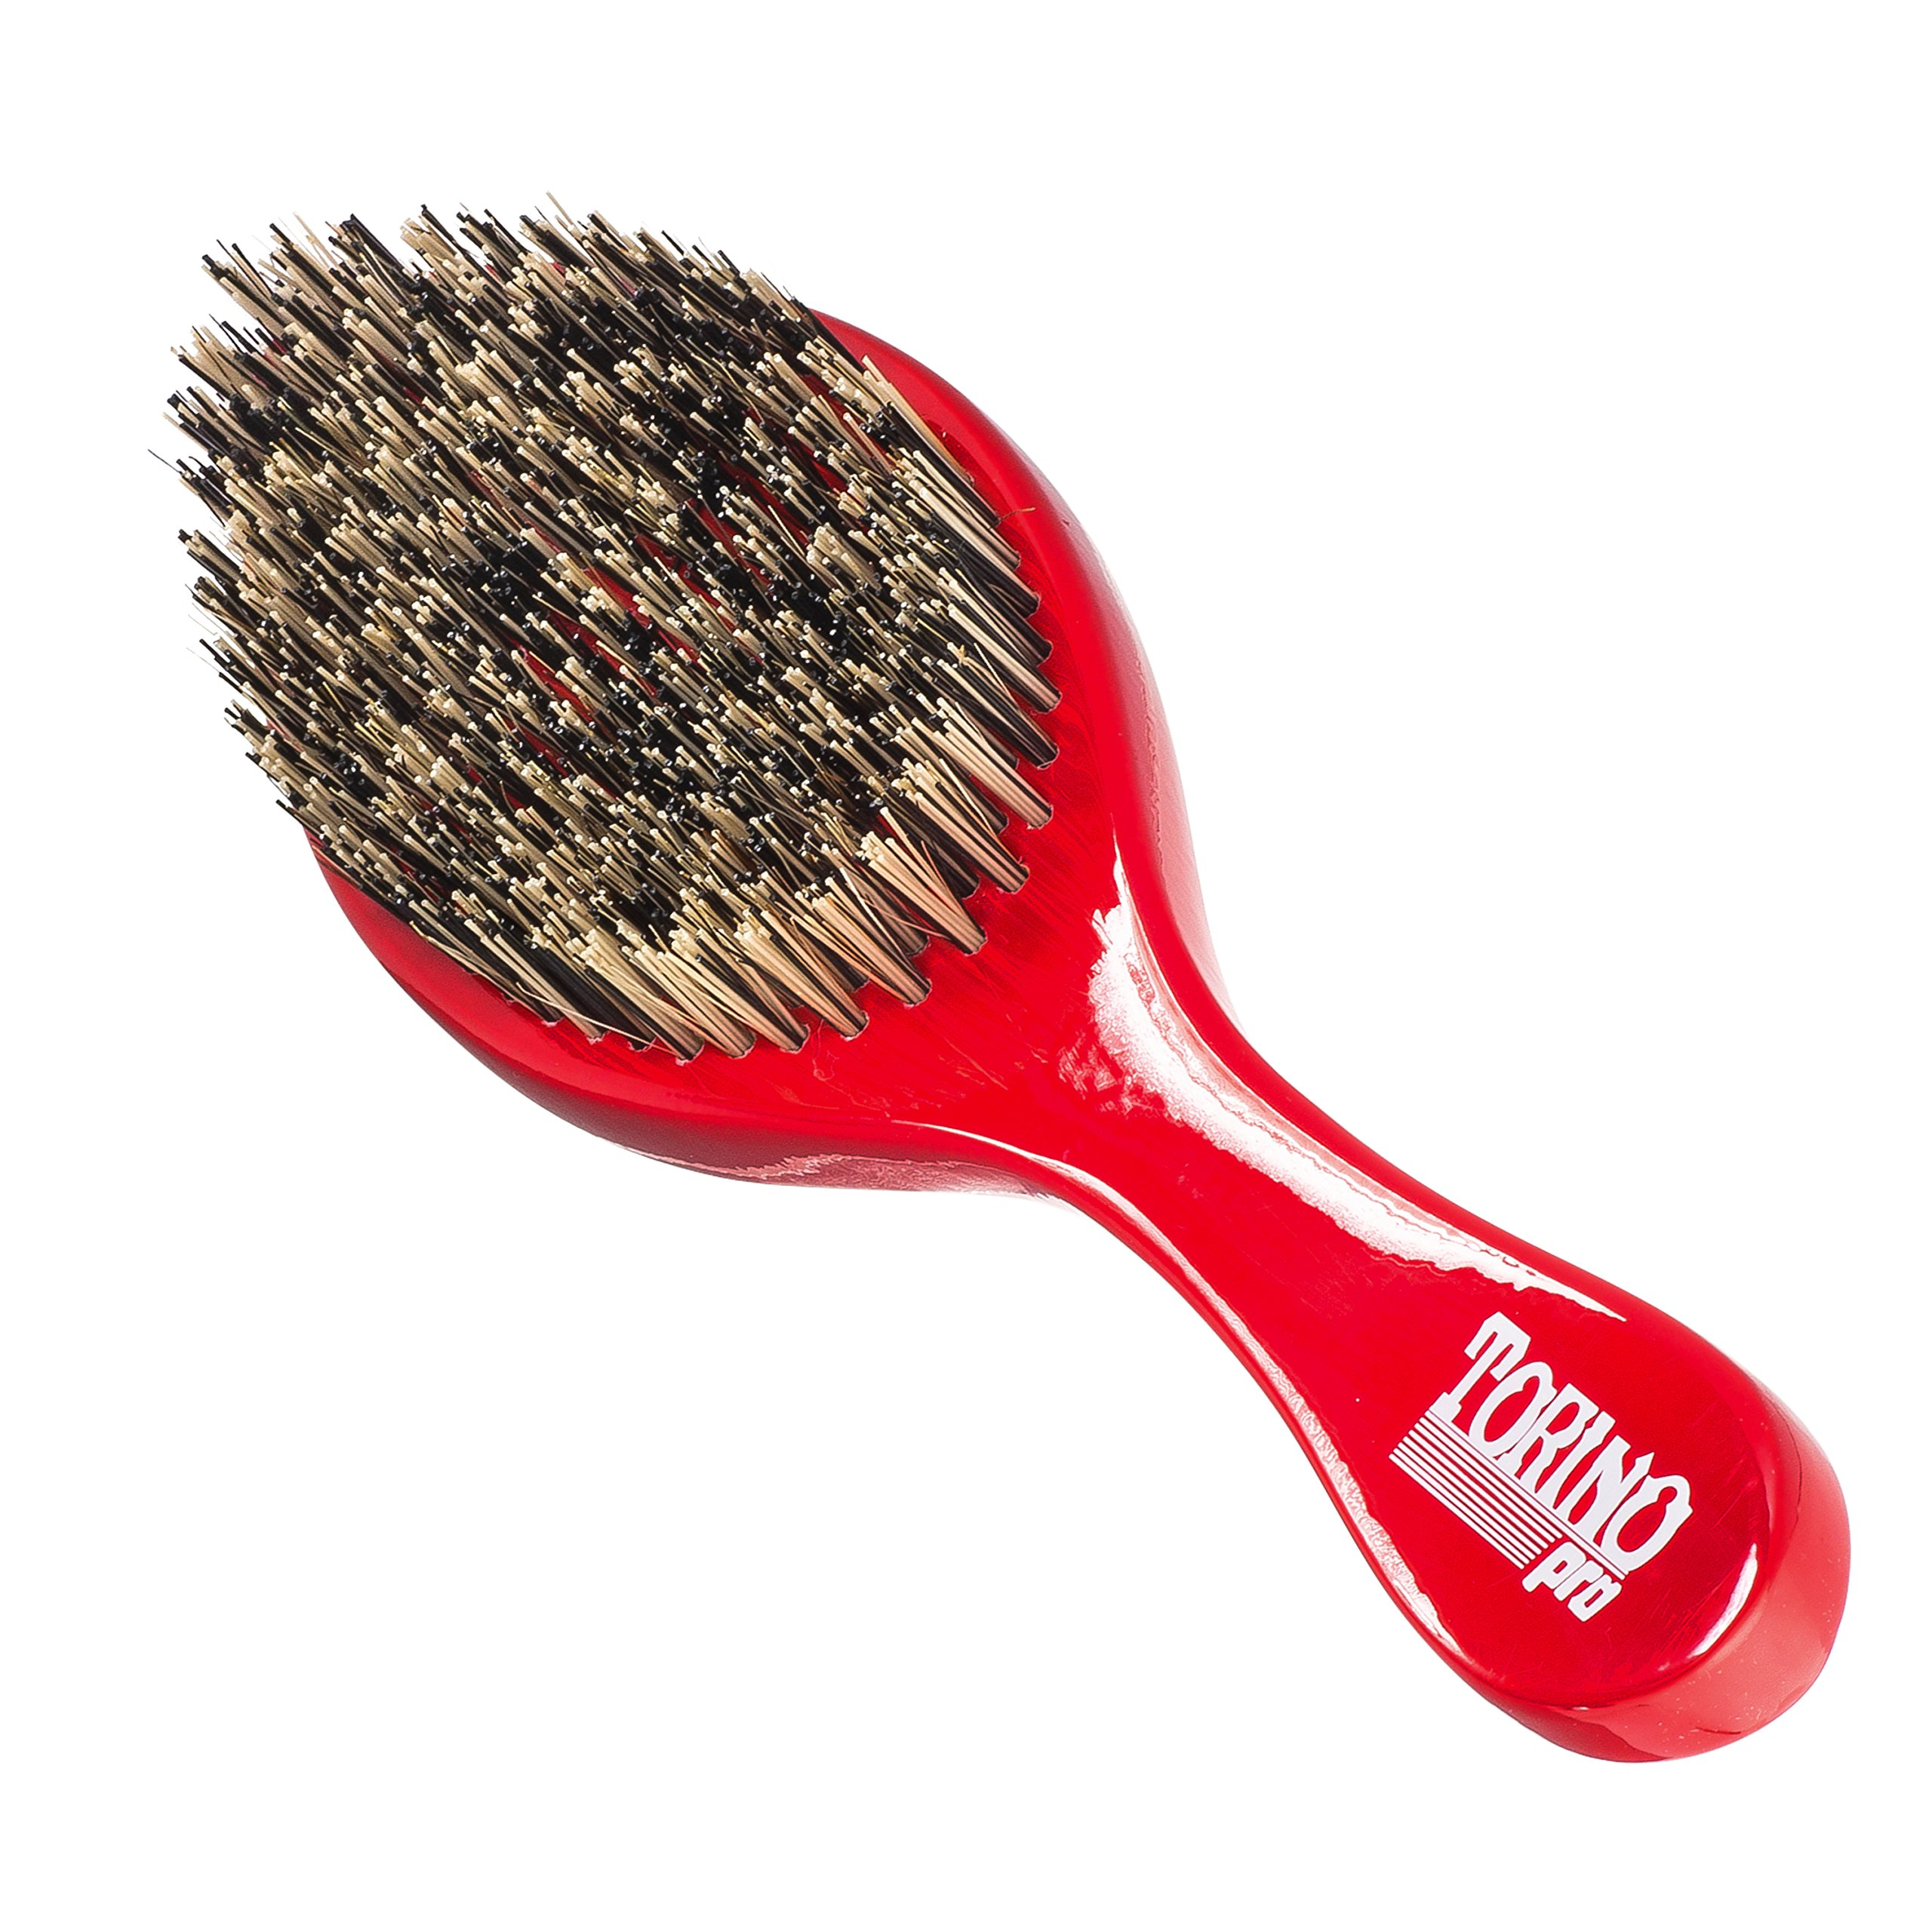 Torino Pro Wave Brush #470 by Brush King - Extra Hard Curve Wave Brush with Reinforced Boar & Nylon Bristles - Great for Wolfing - Curved 360 Waves Brush by TORINO PRO WAVE BRUSHES BY BRUSH KING